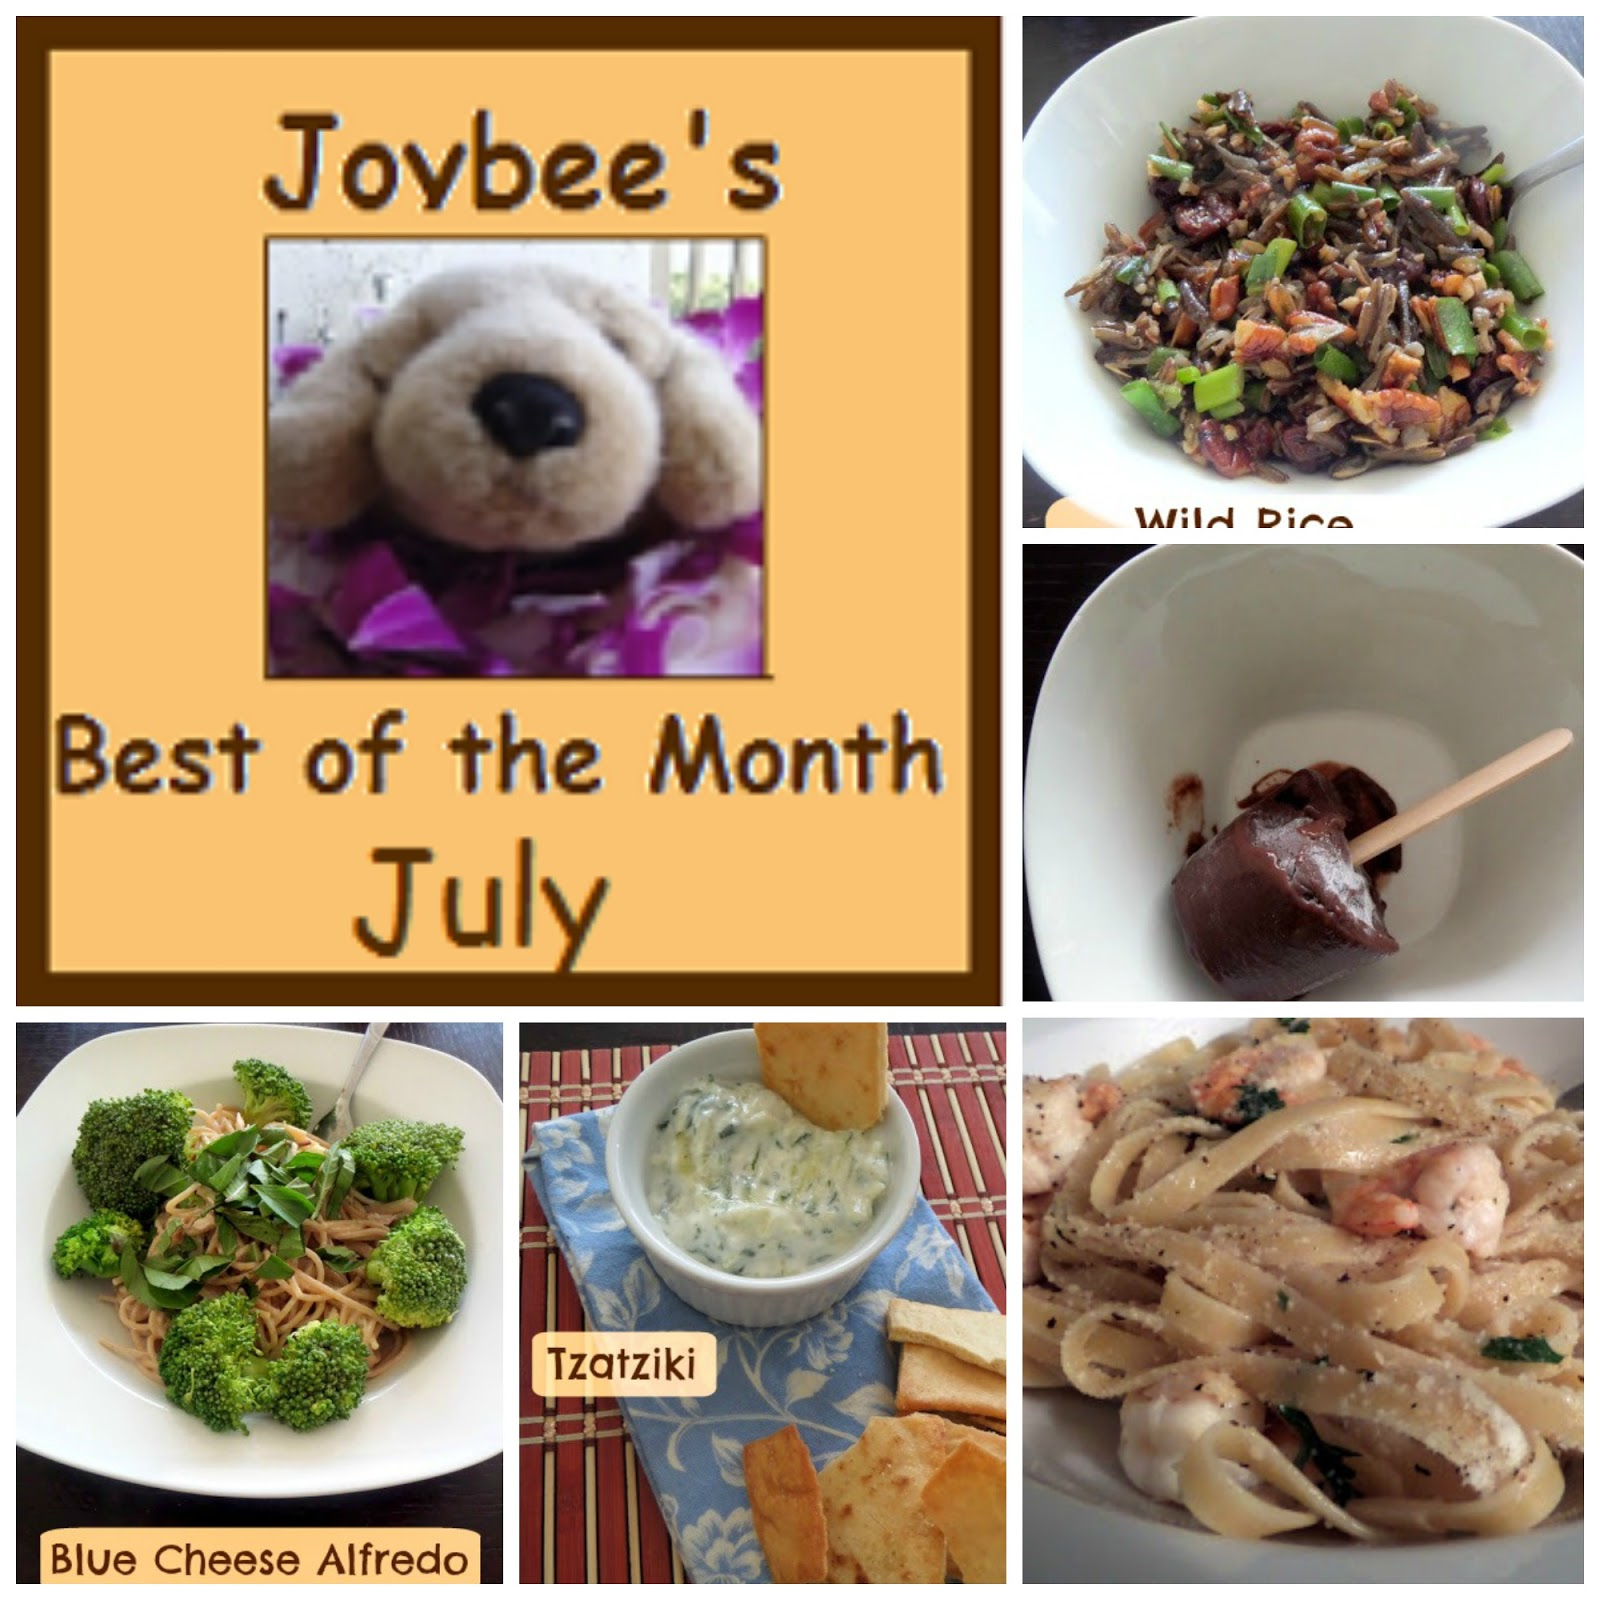 Best of the Month July 2014:  A recap of my most popular posts from July 2014